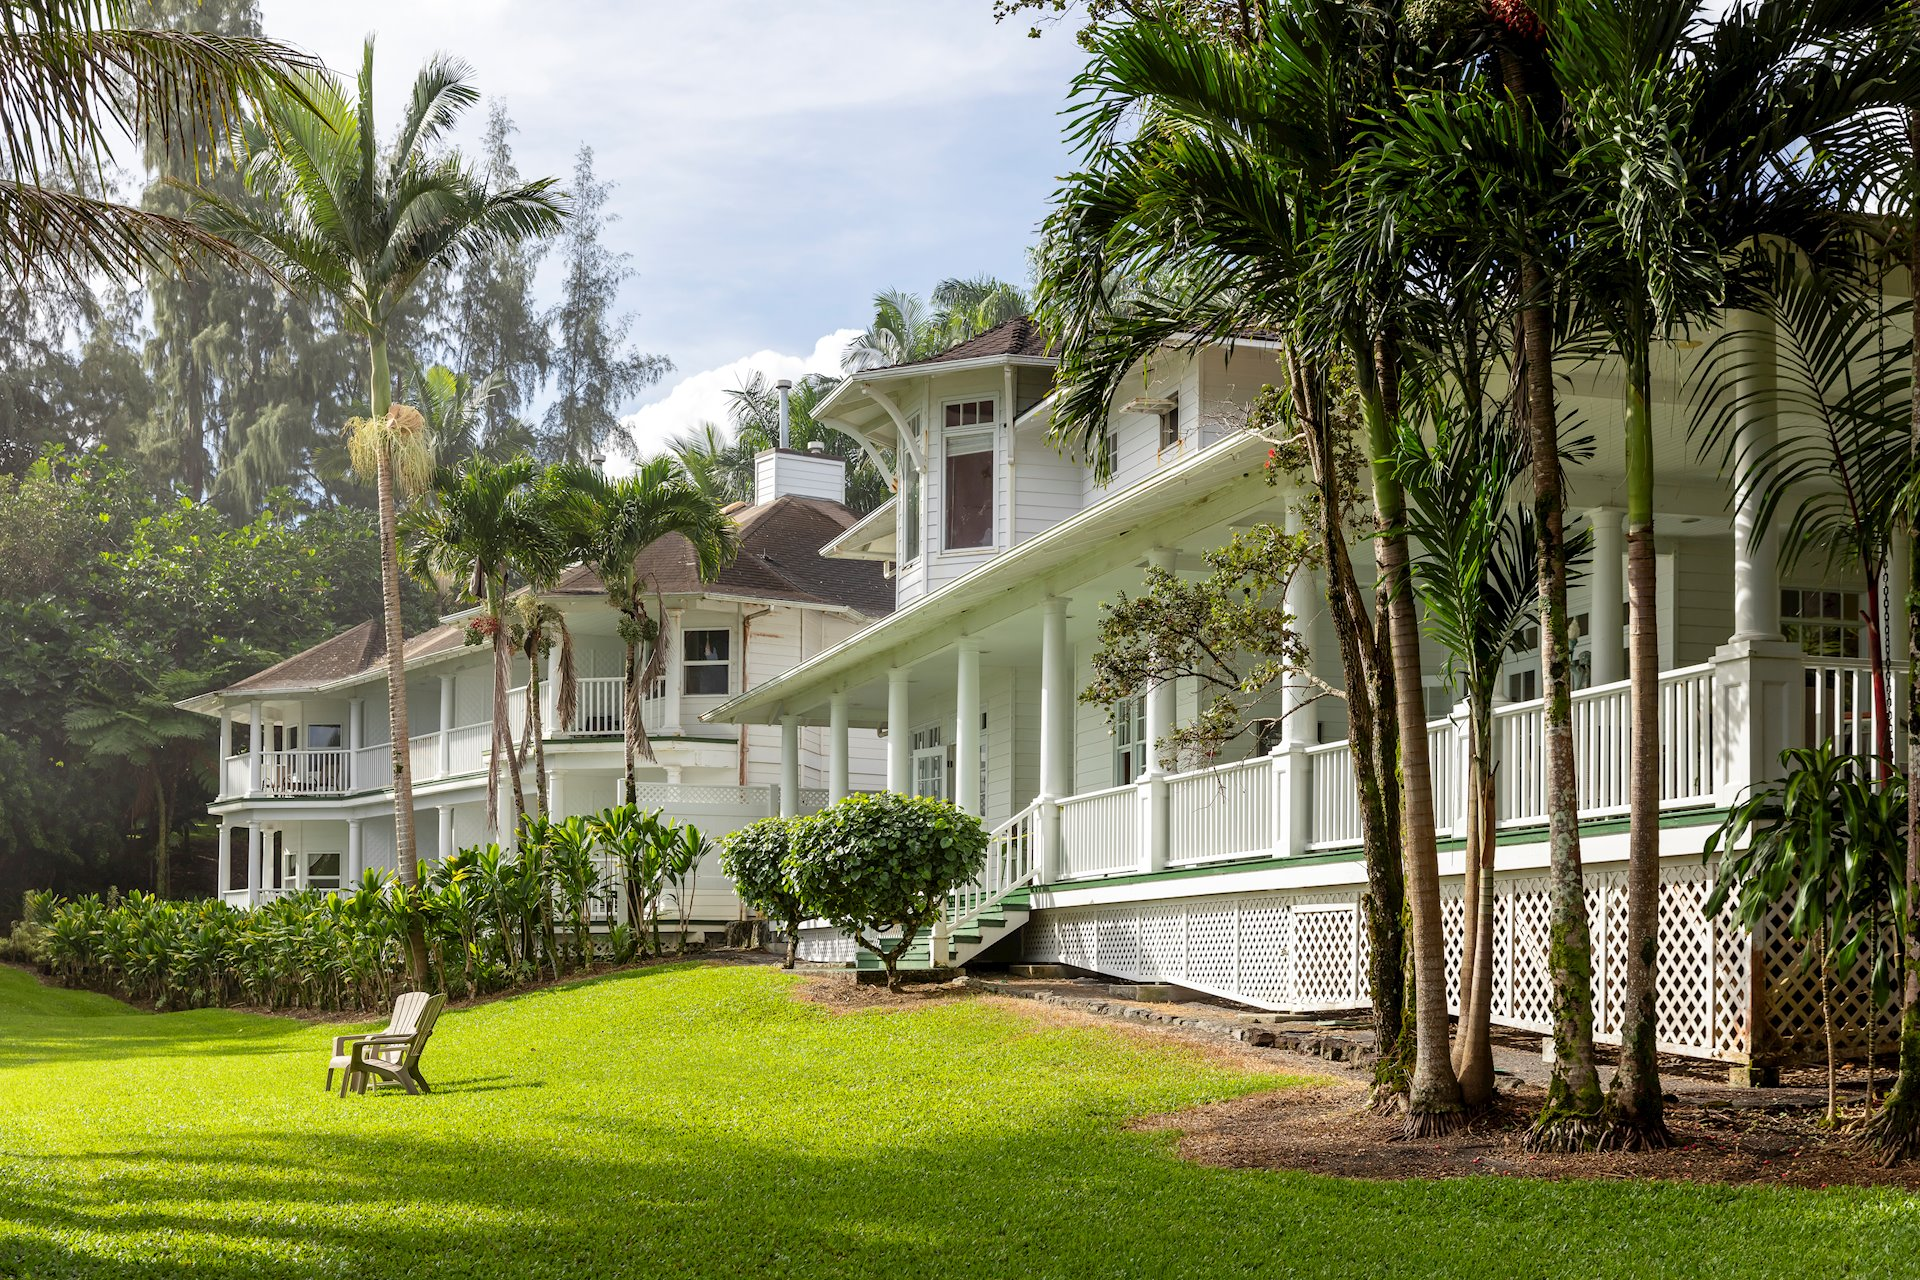 Palm trees and expansive lawns surround the estate.